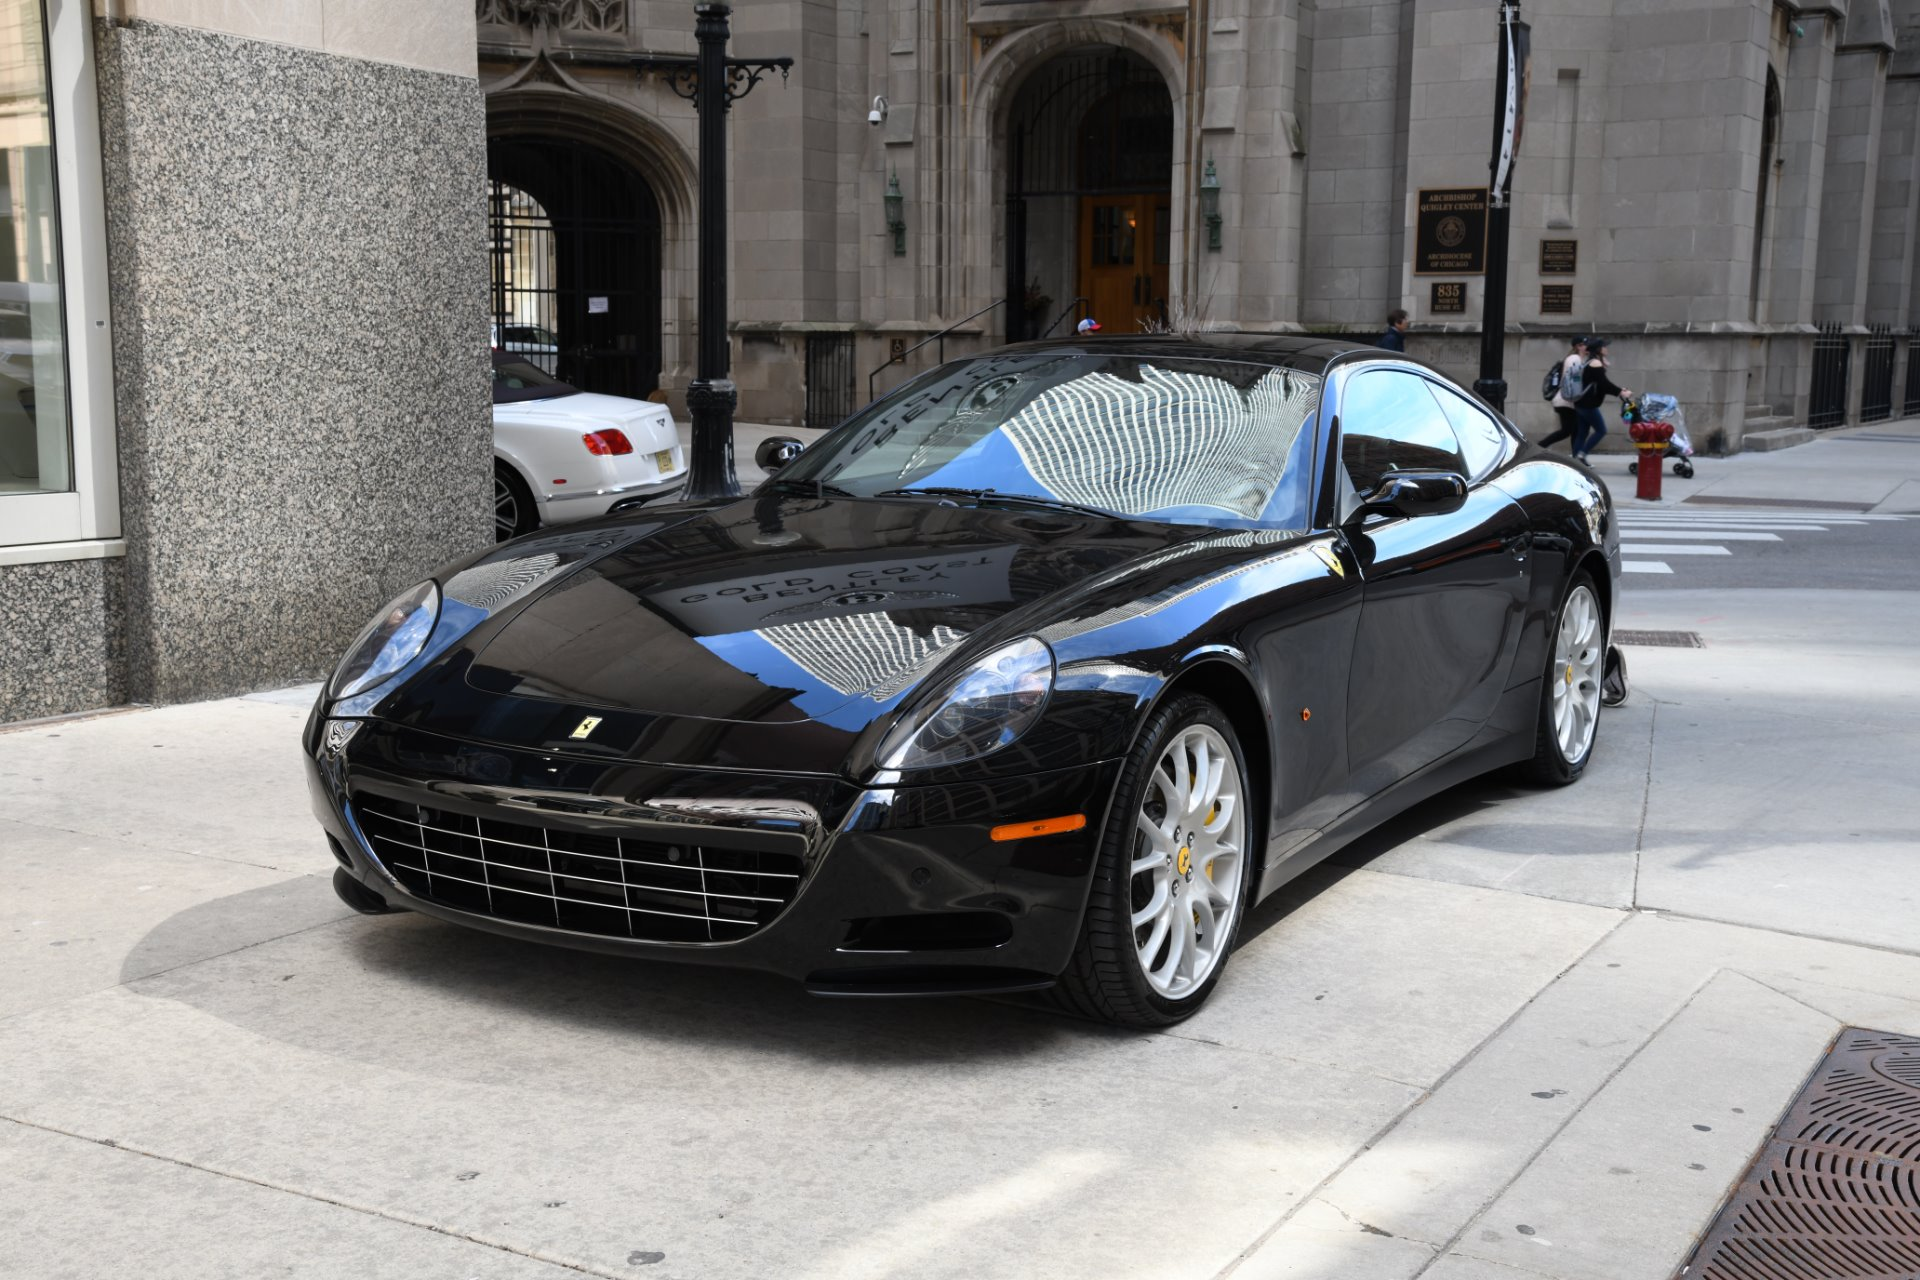 2010 ferrari 612 scaglietti oto used bentley used rolls royce. Cars Review. Best American Auto & Cars Review